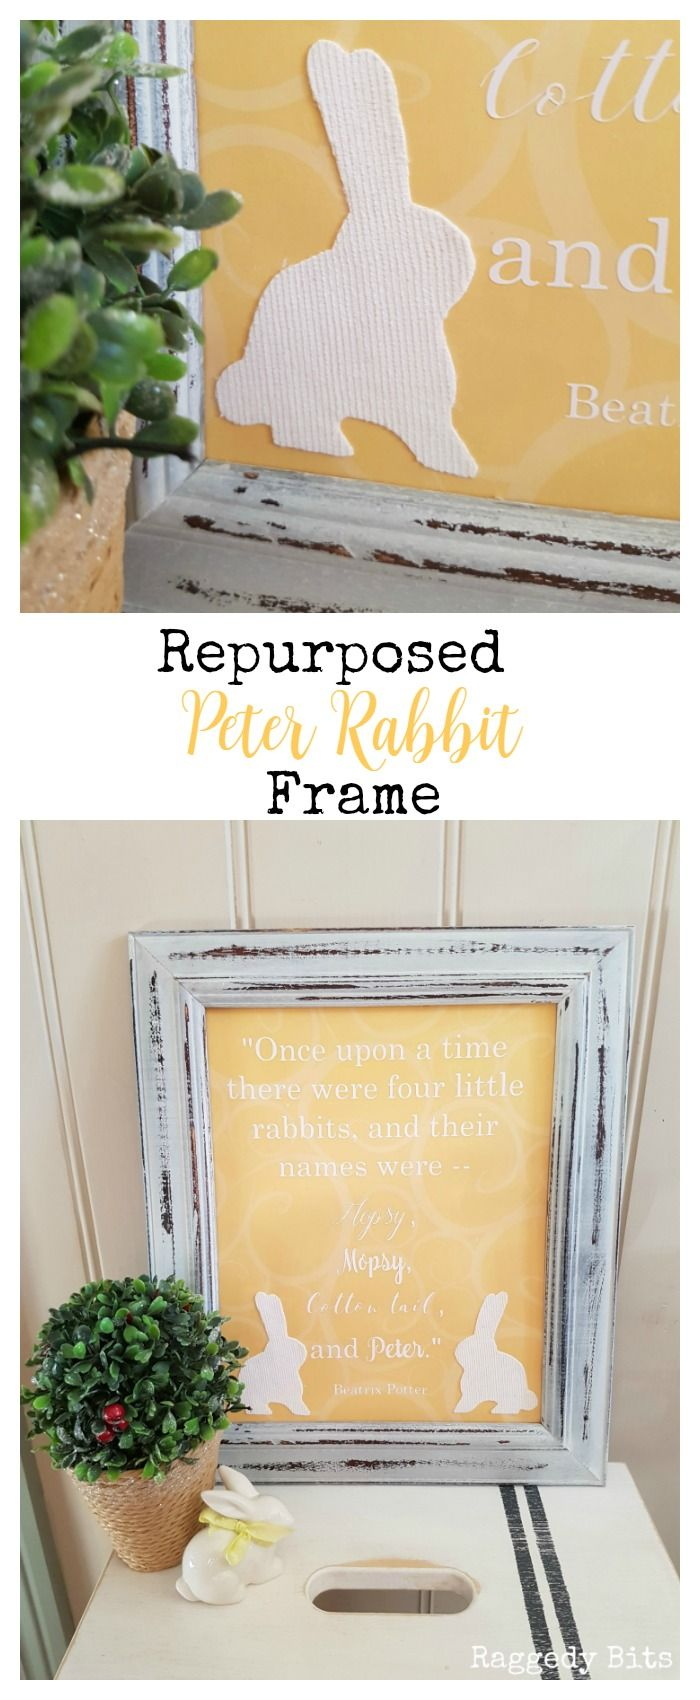 This months Movie Monday Challenge is here again! This time we got to choose a movie as long as it has something to do with Spring! I chose The Tale of Peter Rabbit. Sharing how to make a Repurposed Peter Rabbit Frame   Full tutorial   www.raggedy-bits.com